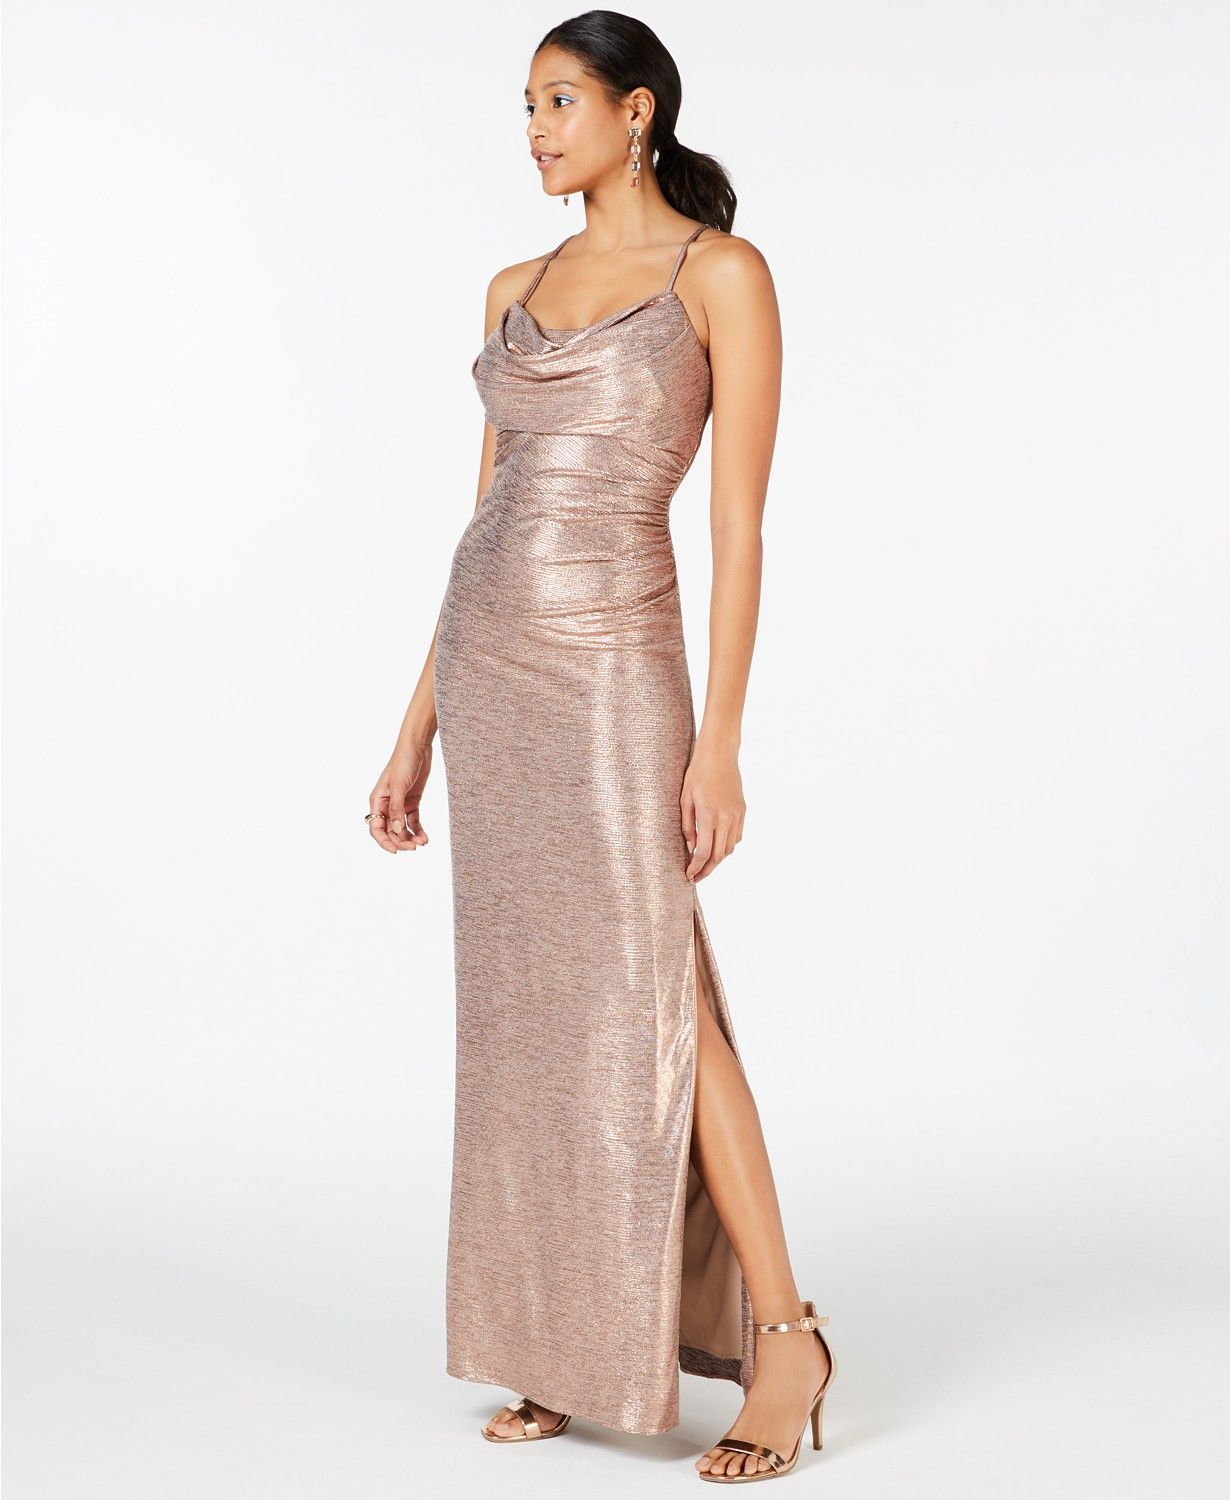 Cowl Neck Gold Foil Gown Prom Dress Perfect For Prom 2019 Ad Prom Promdress Prom2019 Cowl Eveningdress Ev Dresses With Leggings Fashion Review Dresses